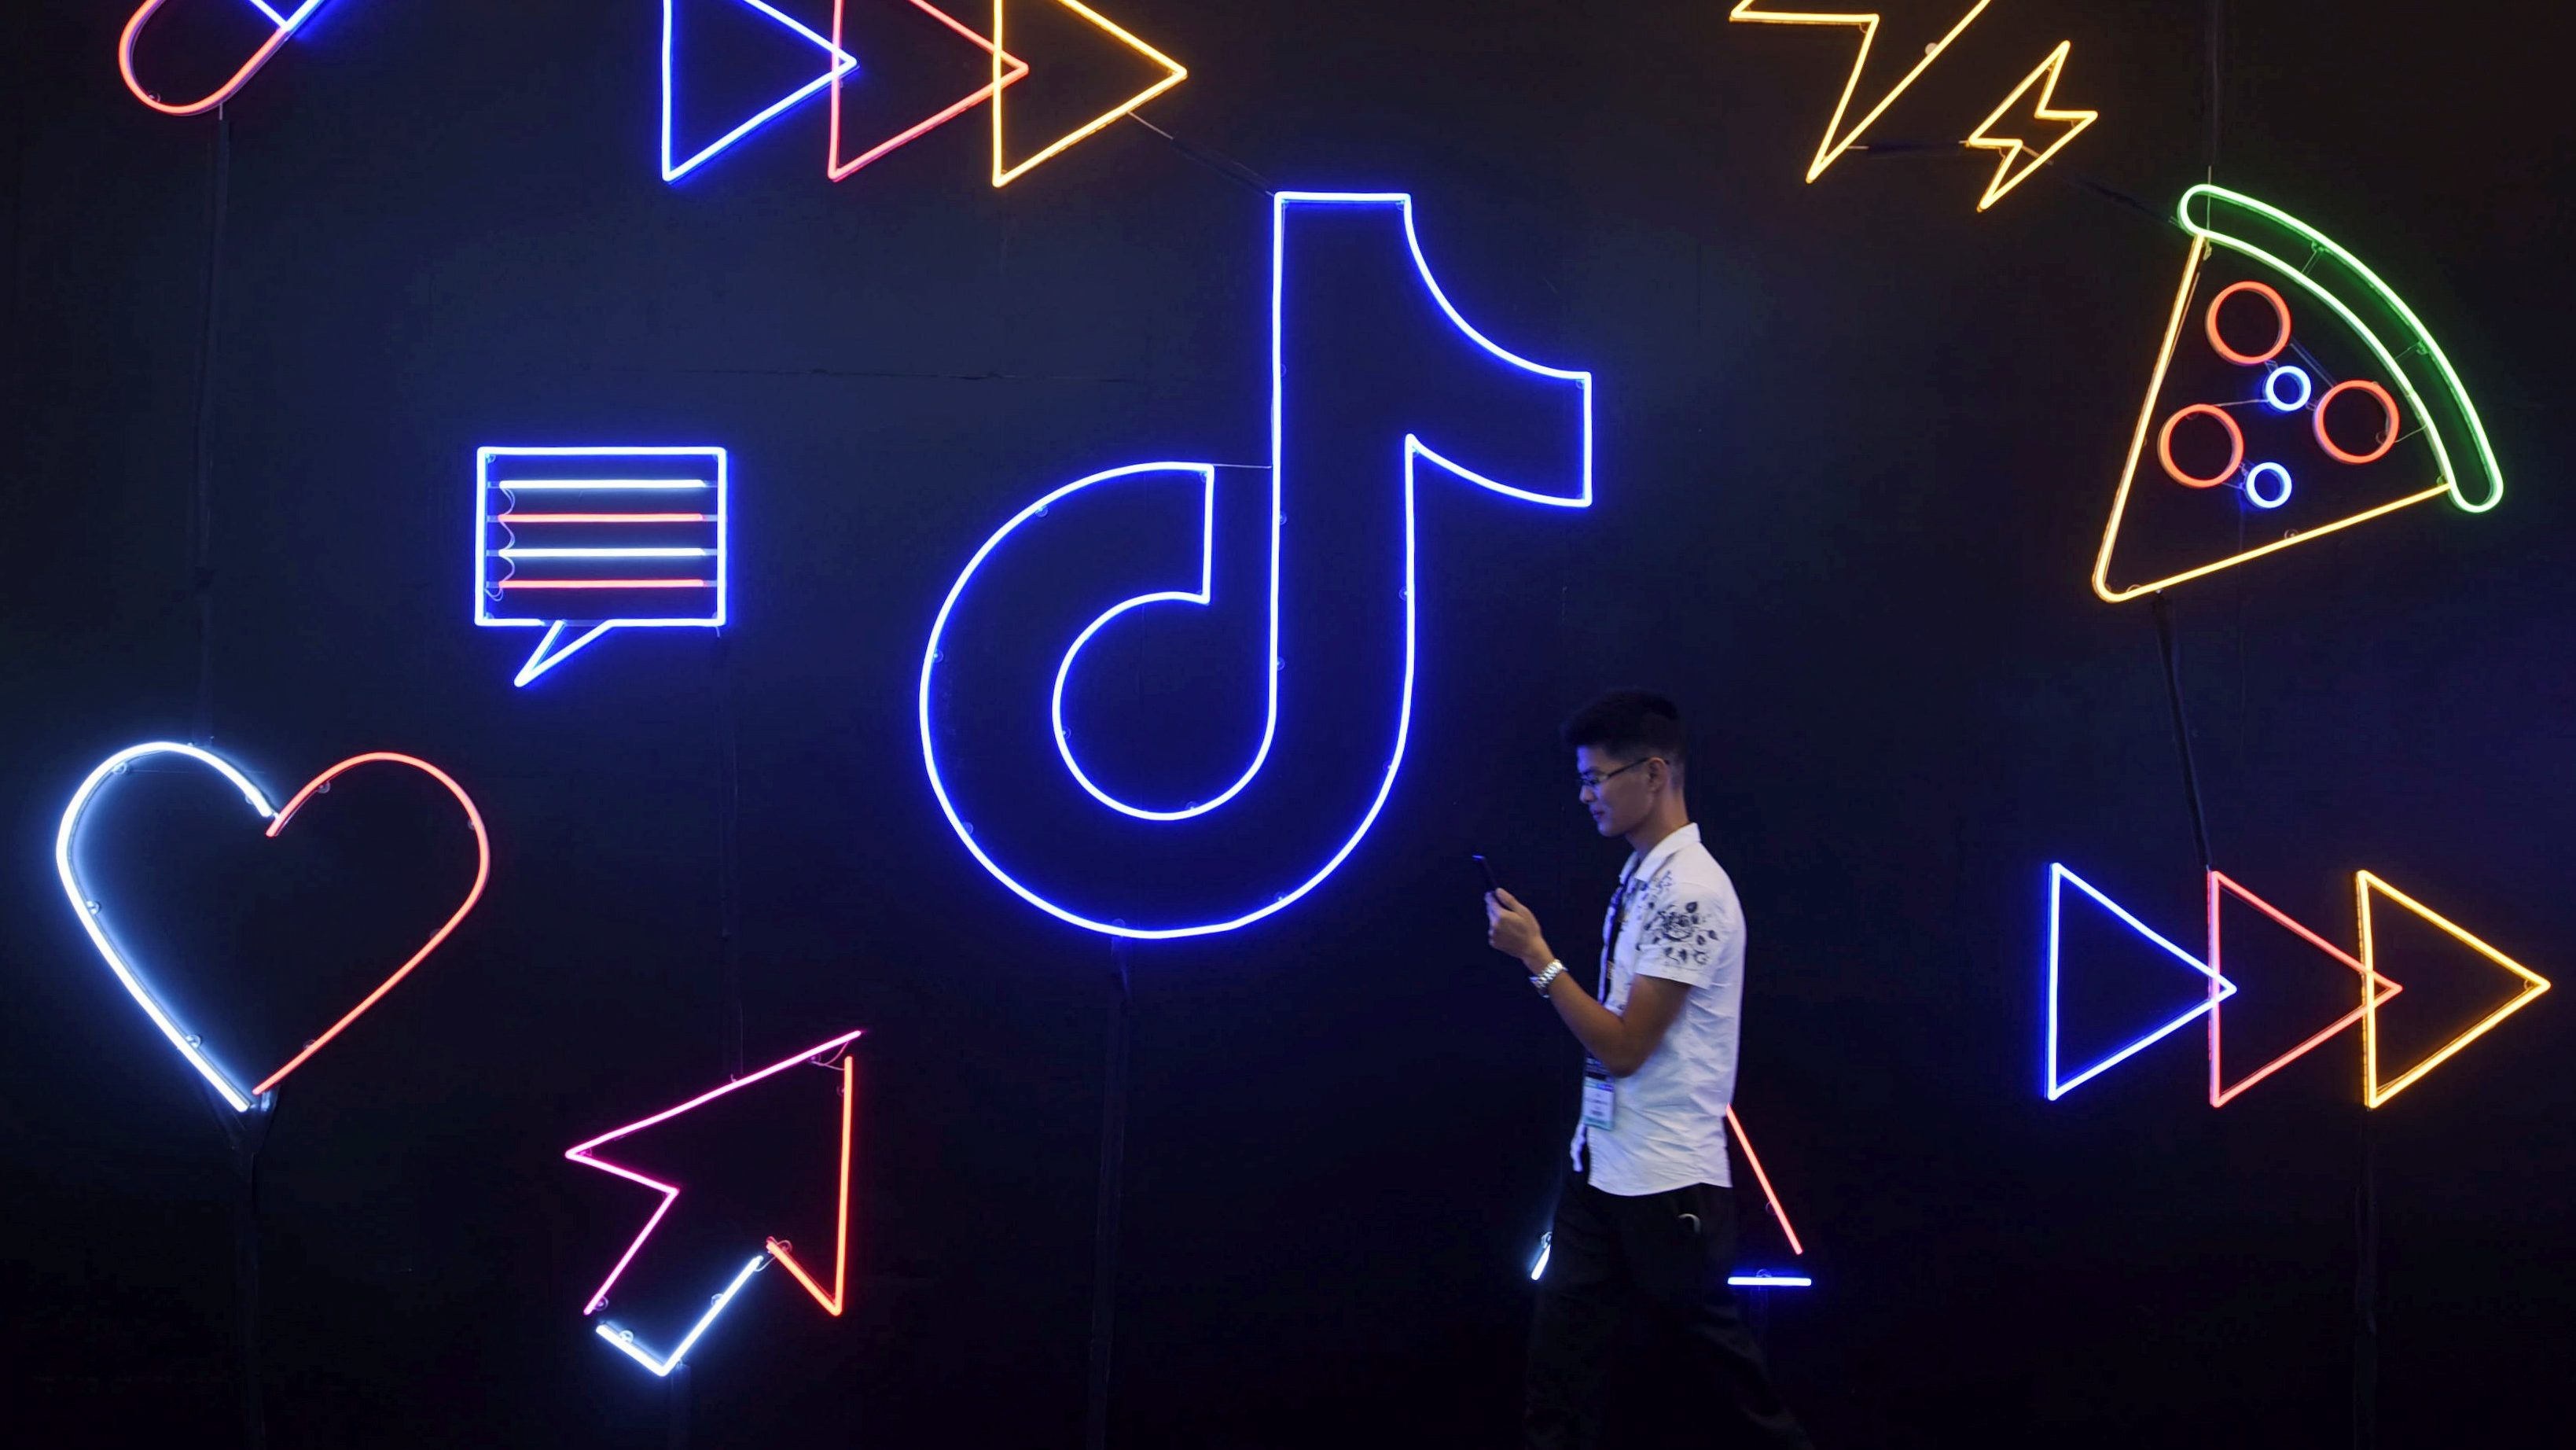 A man holding a phone walks past a sign of Chinese company ByteDance's app TikTok